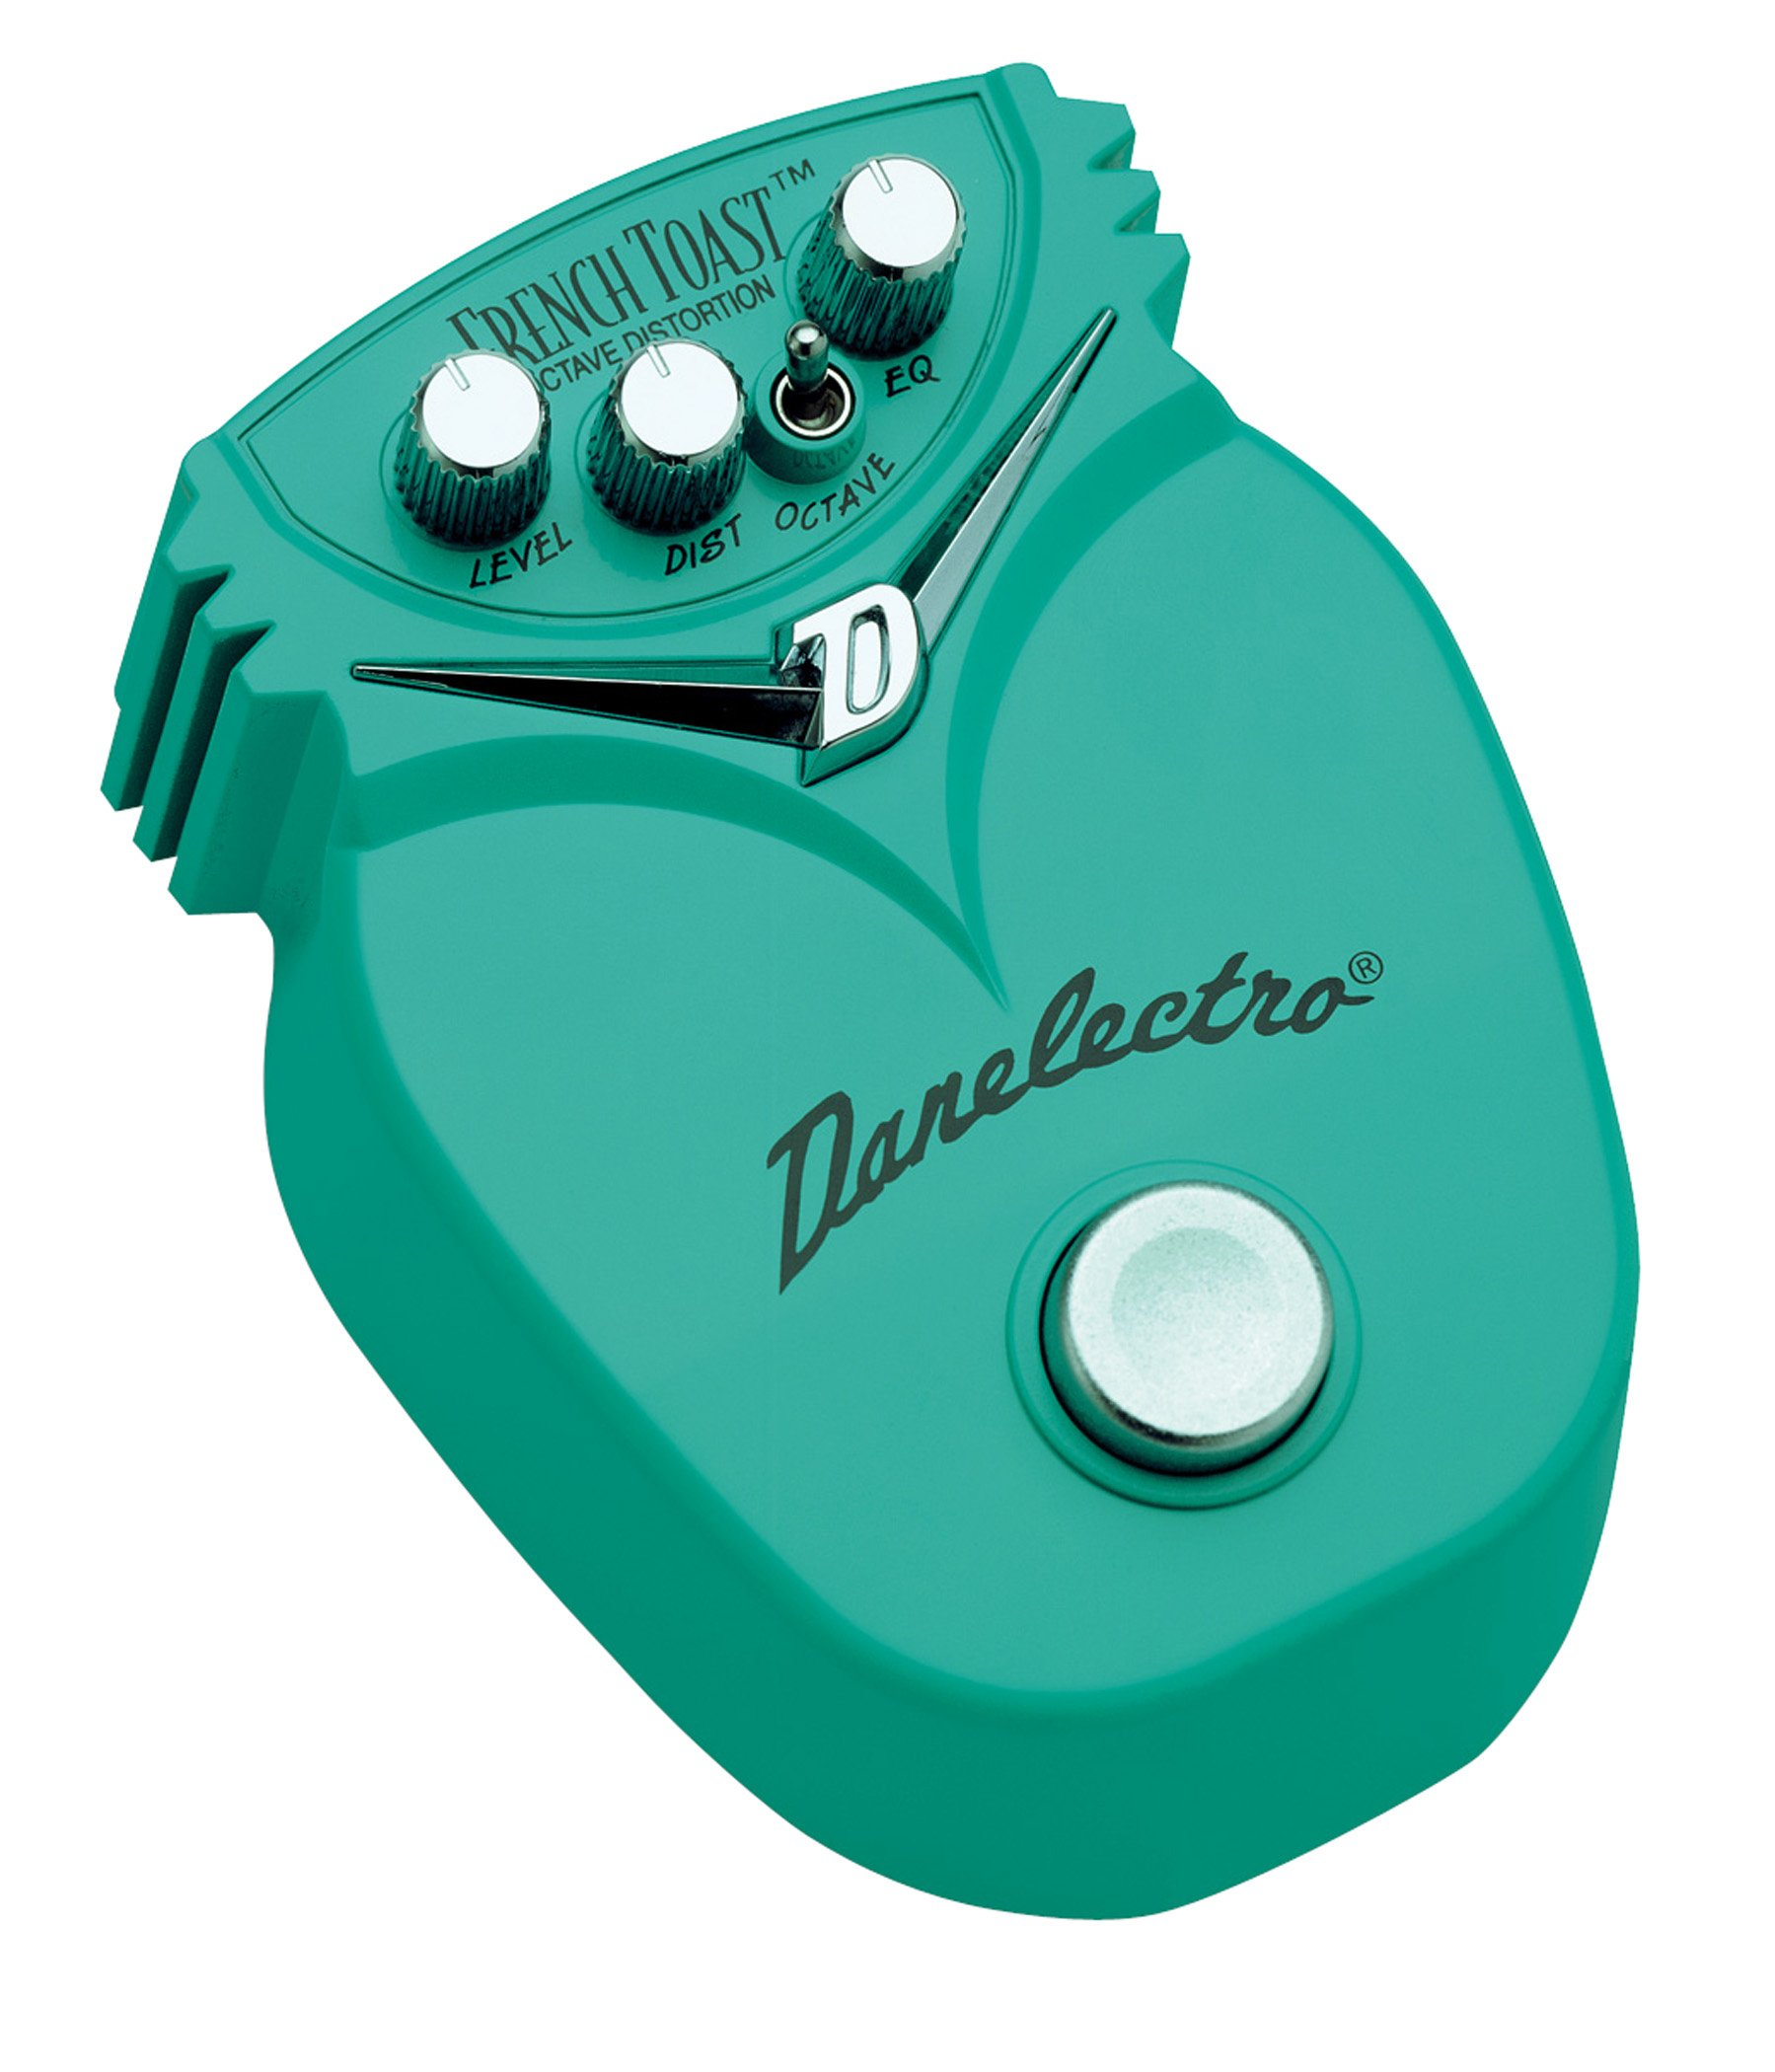 Danelectro DJ-13 French Toast Octave Distortion Mini Effects Pedal by Danelectro